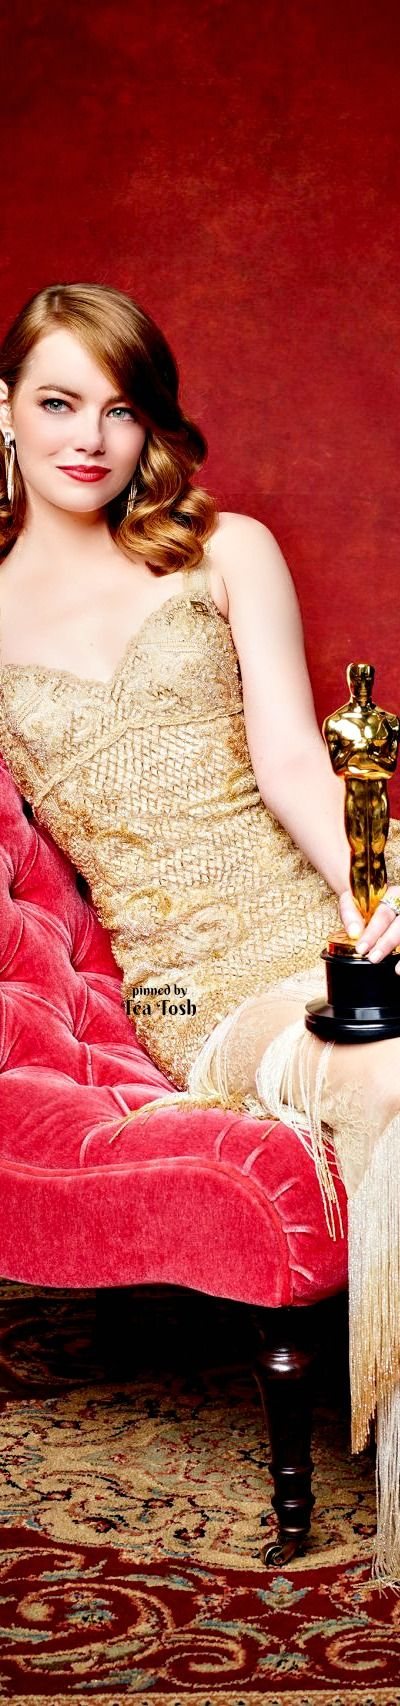 ❇Téa Tosh❇ Emma Stone – Winner for Best Actress (2017) in La La Land